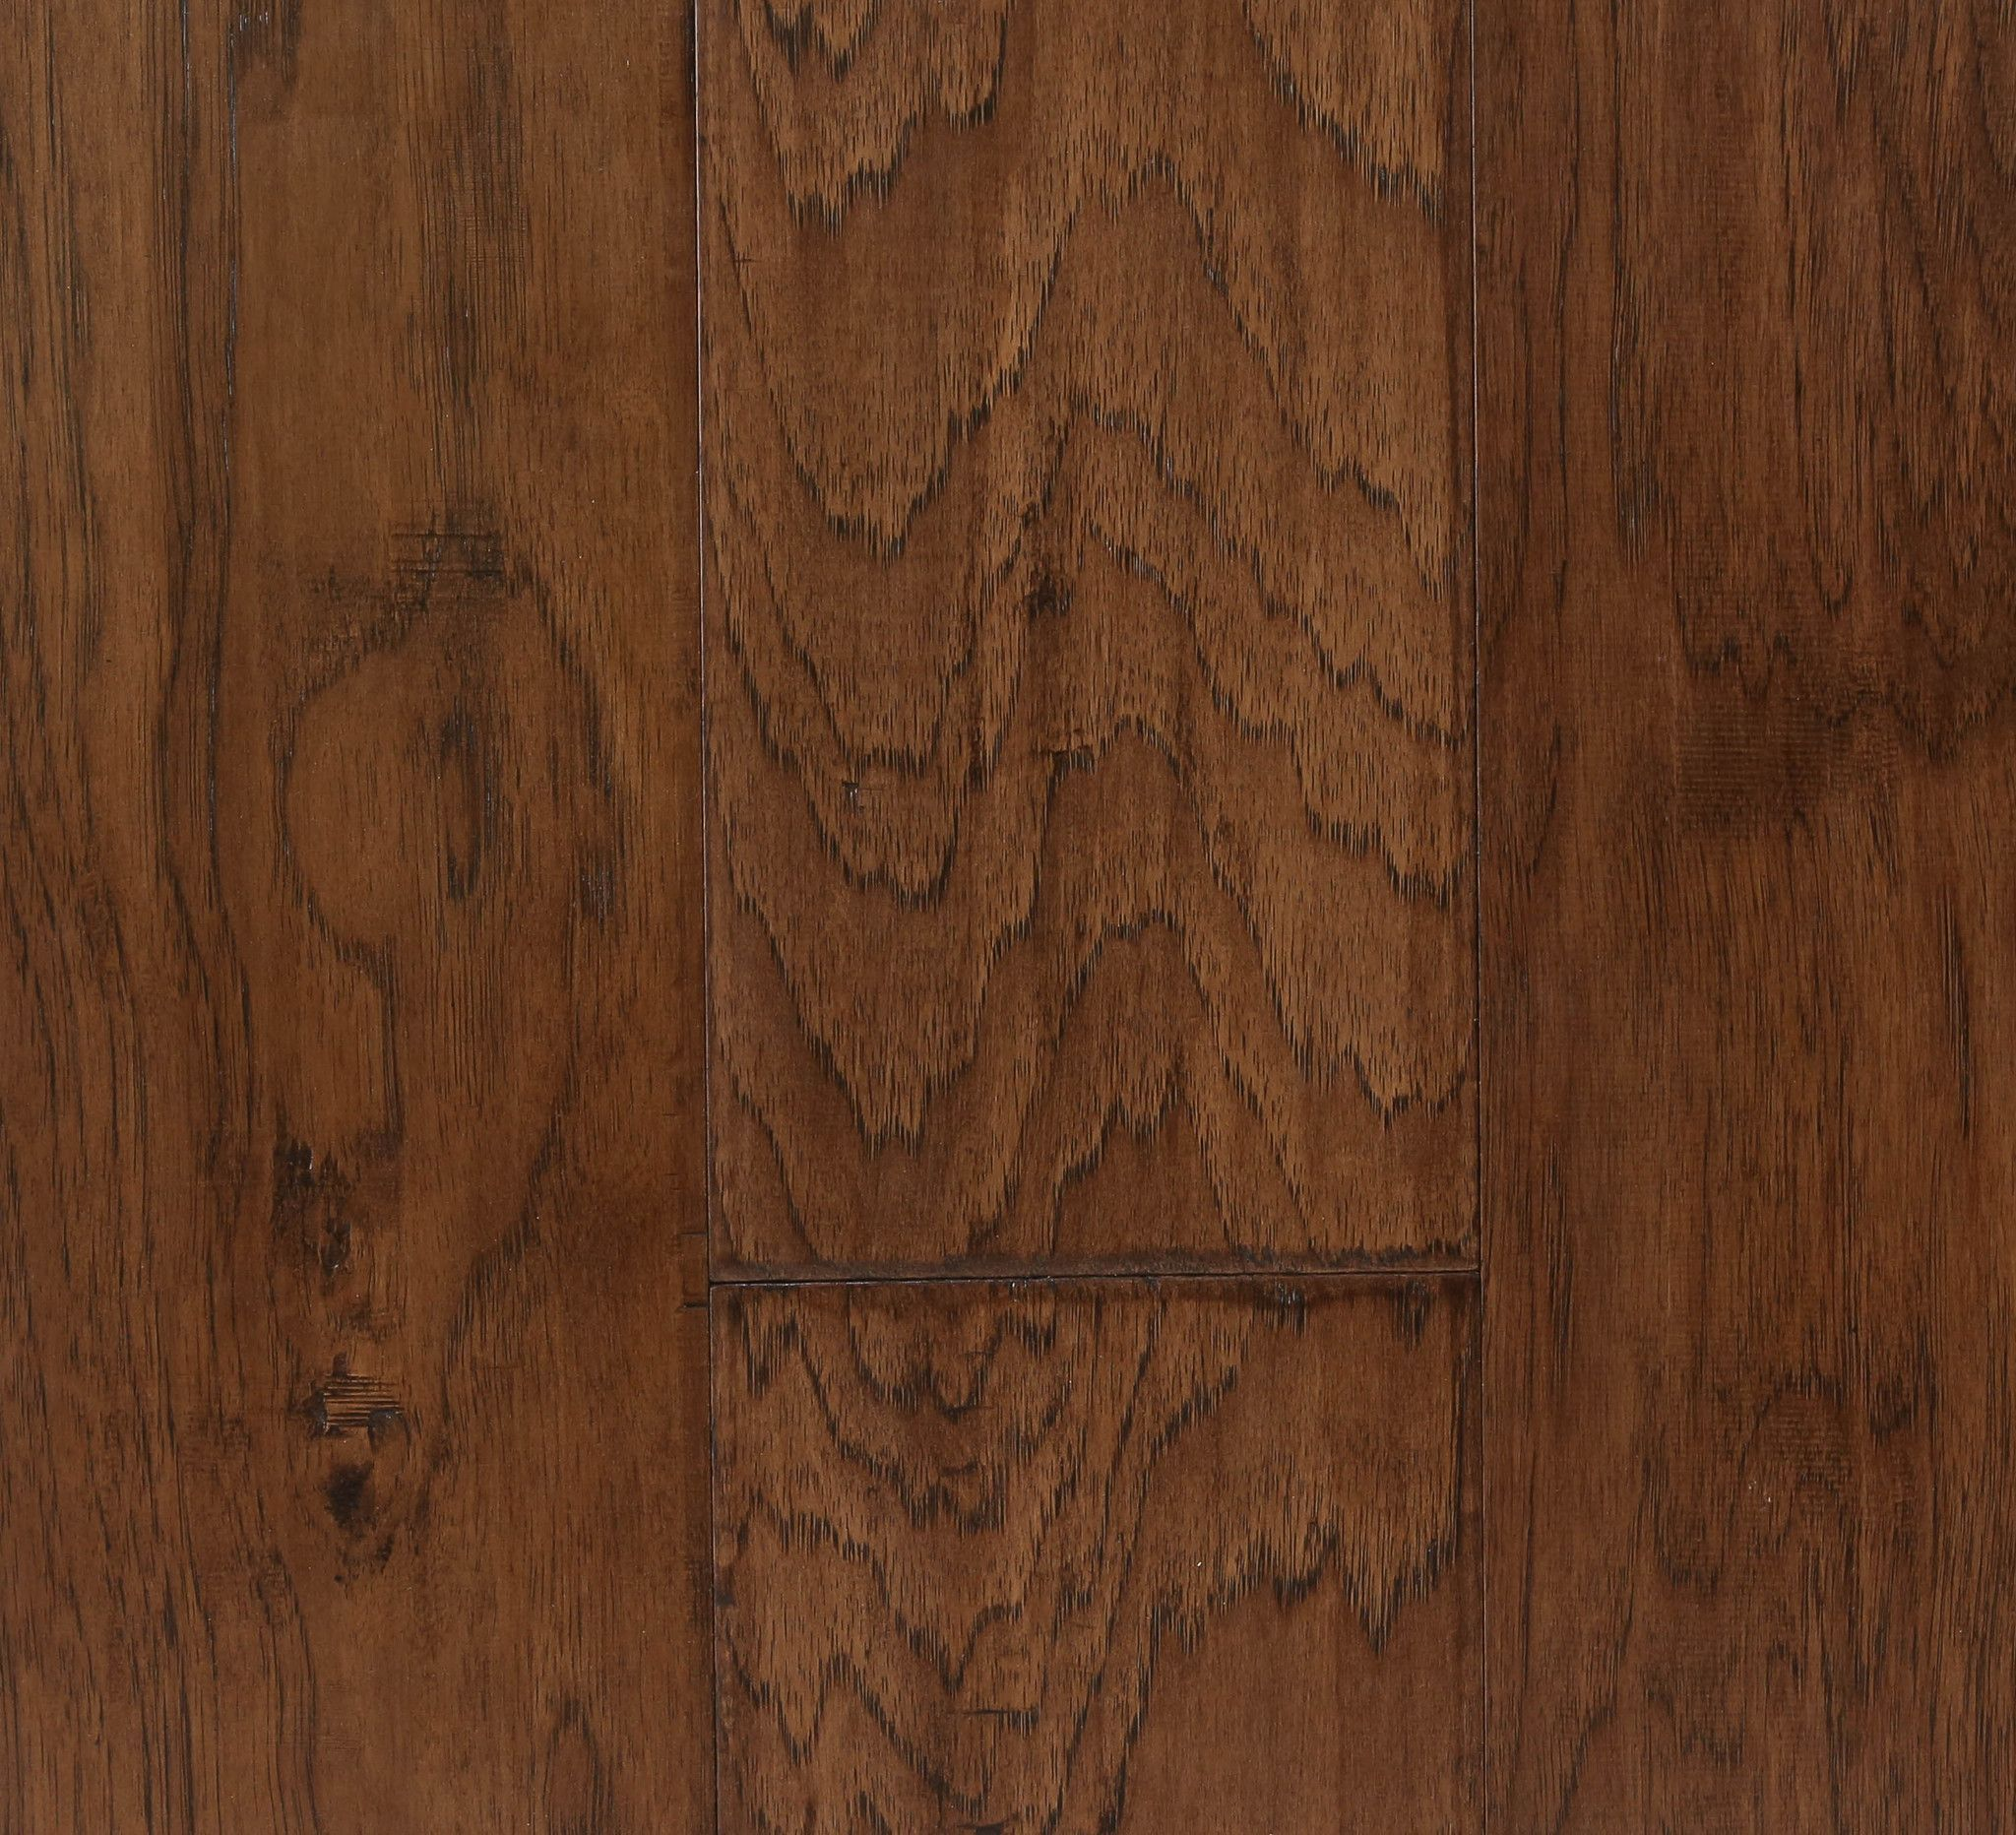 Michael Anthony Furniture Midland Hickory Series Pecan Engineered Hardwood Flooring Engineered Hardwood Flooring Hardwood Floors Engineered Hardwood